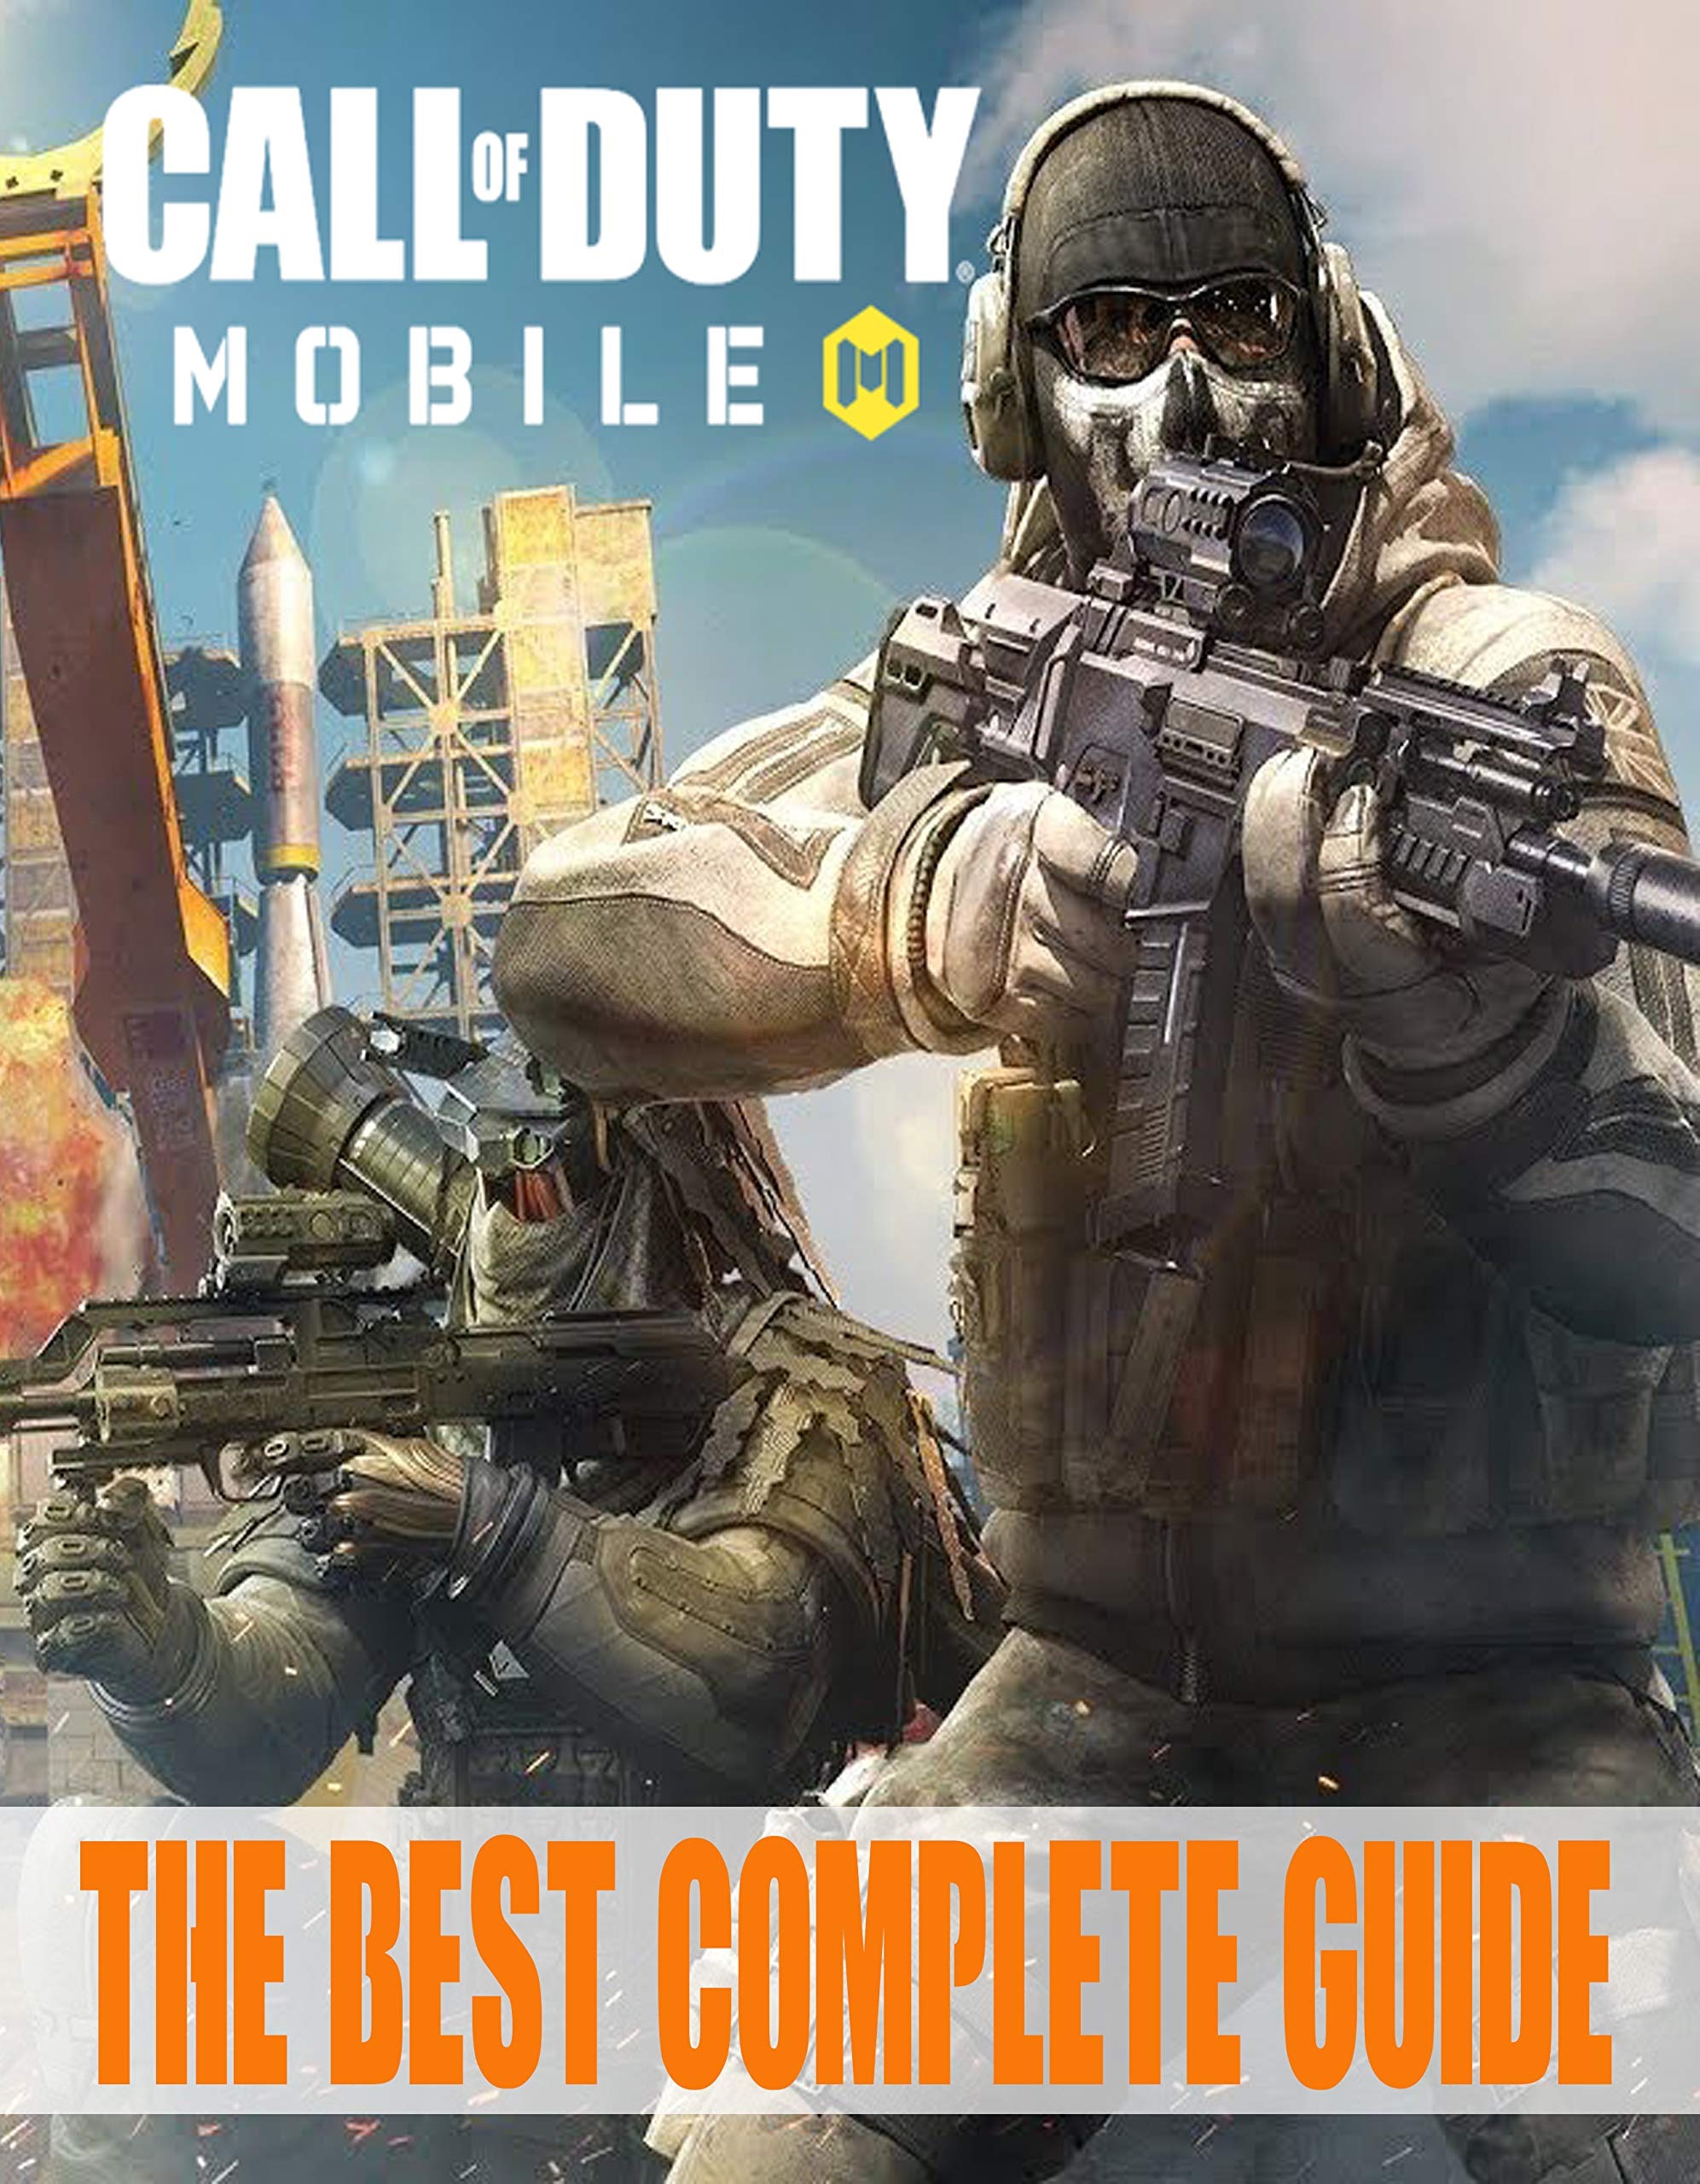 Call Of Duty Mobile: The Best Complete Guide: Tips, Tricks and Strategy Advice, Everything You Need to Know About Call Of Duty Mobile